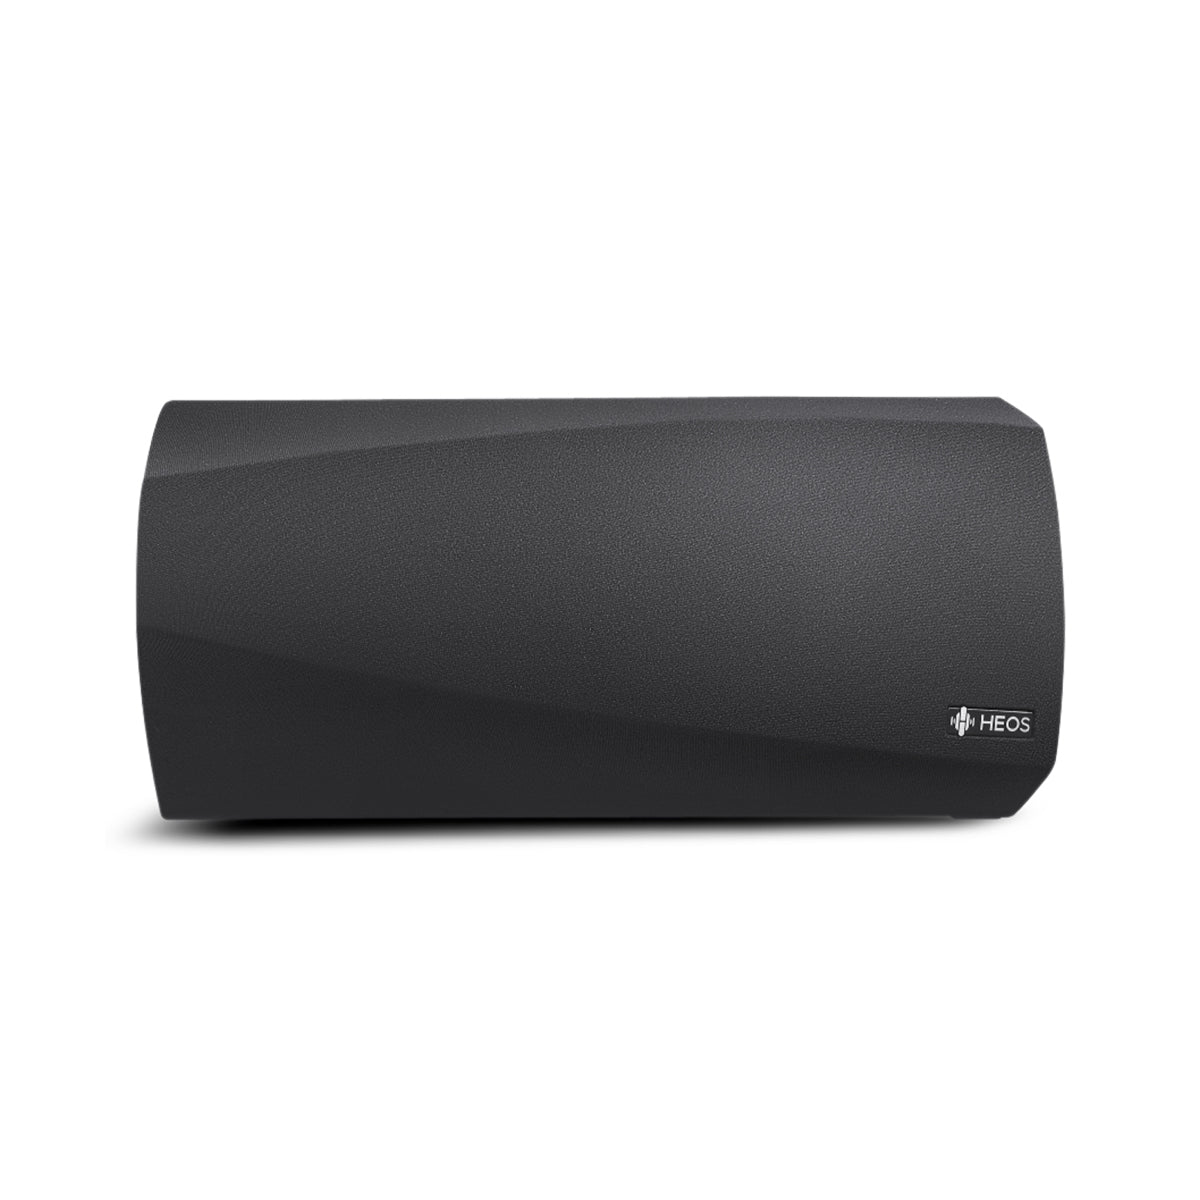 Denon HEOS 3 - Bluetooth WiFi Speaker, Denon, Bluetooth Wifi Speaker - AVStore.in